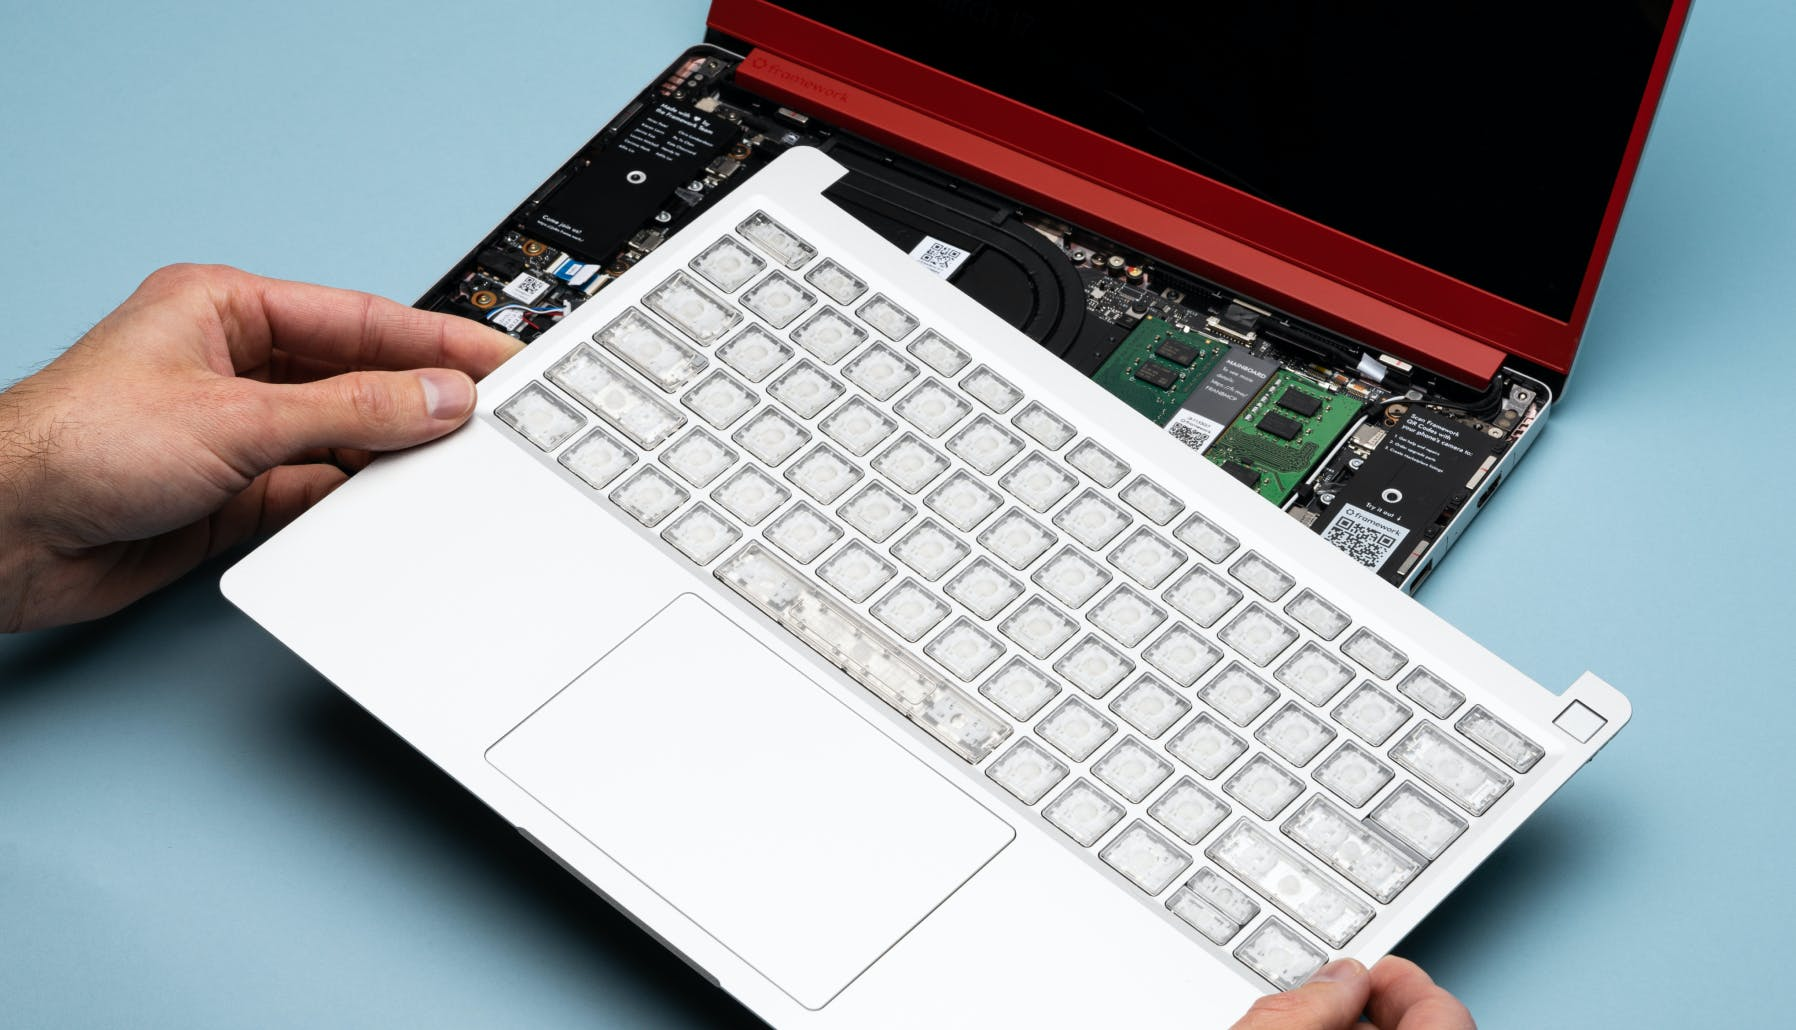 taking off the c cover from a laptop